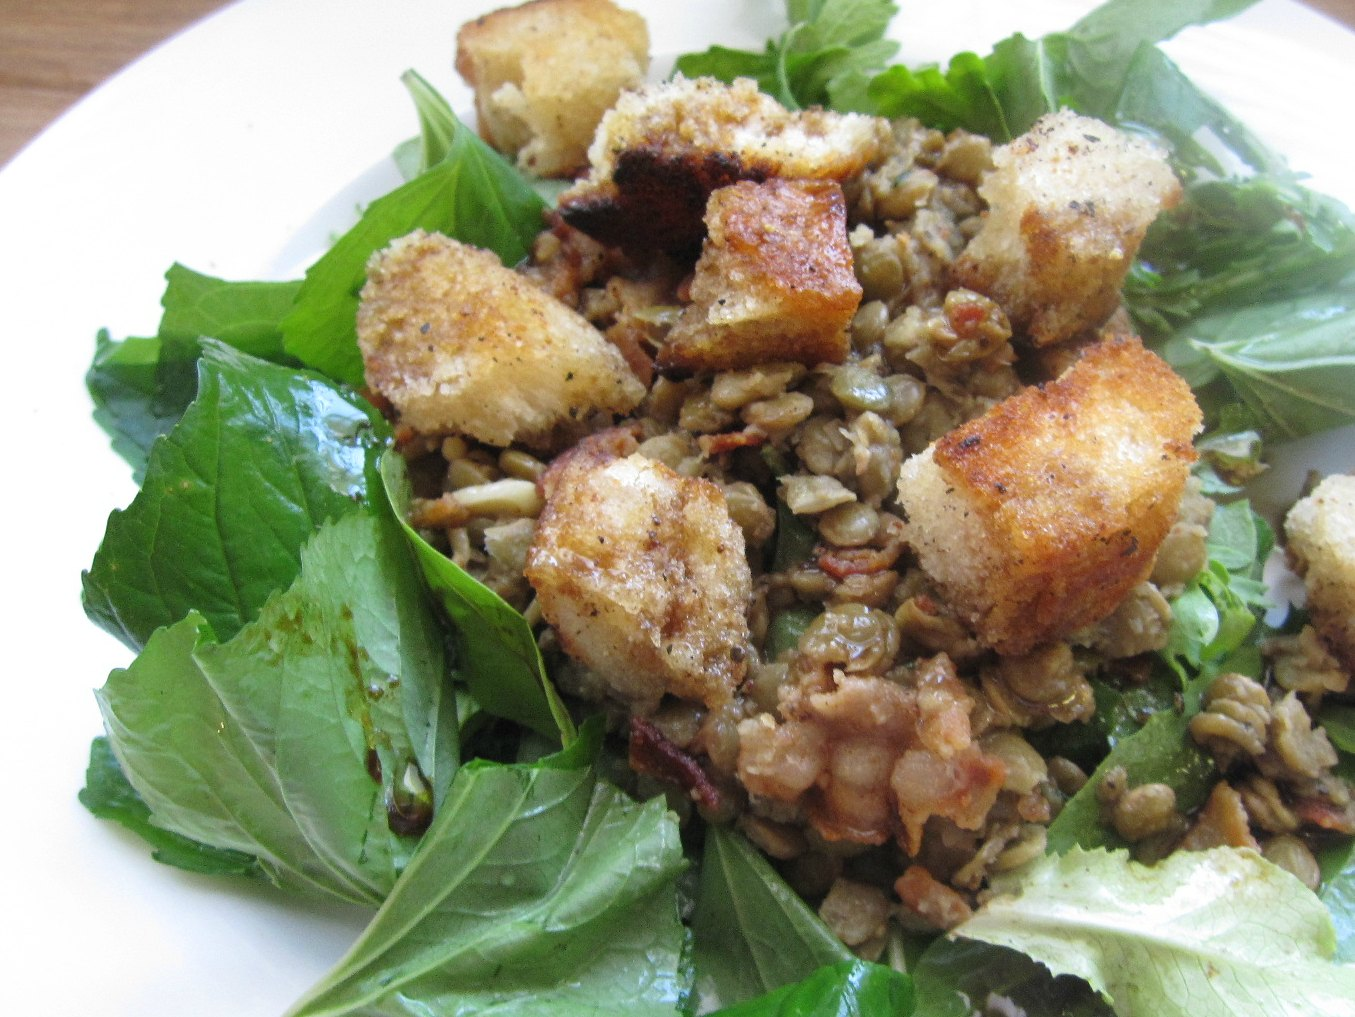 The Scratch Patch: Warm Lentil Salad